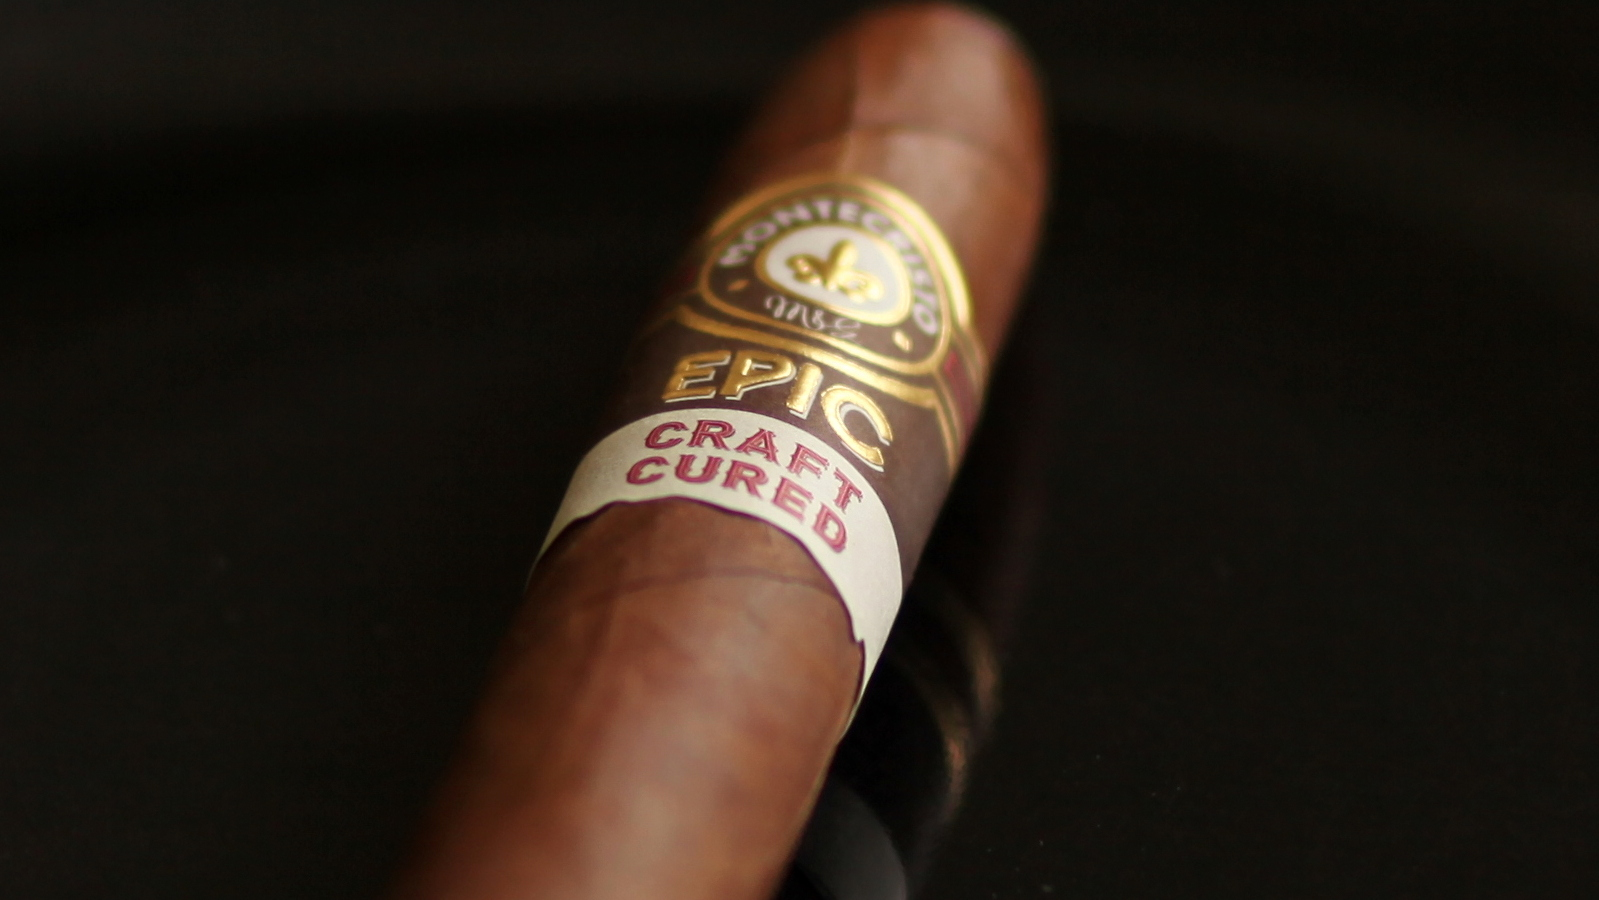 Montecristo Craft Cured Review Closeup